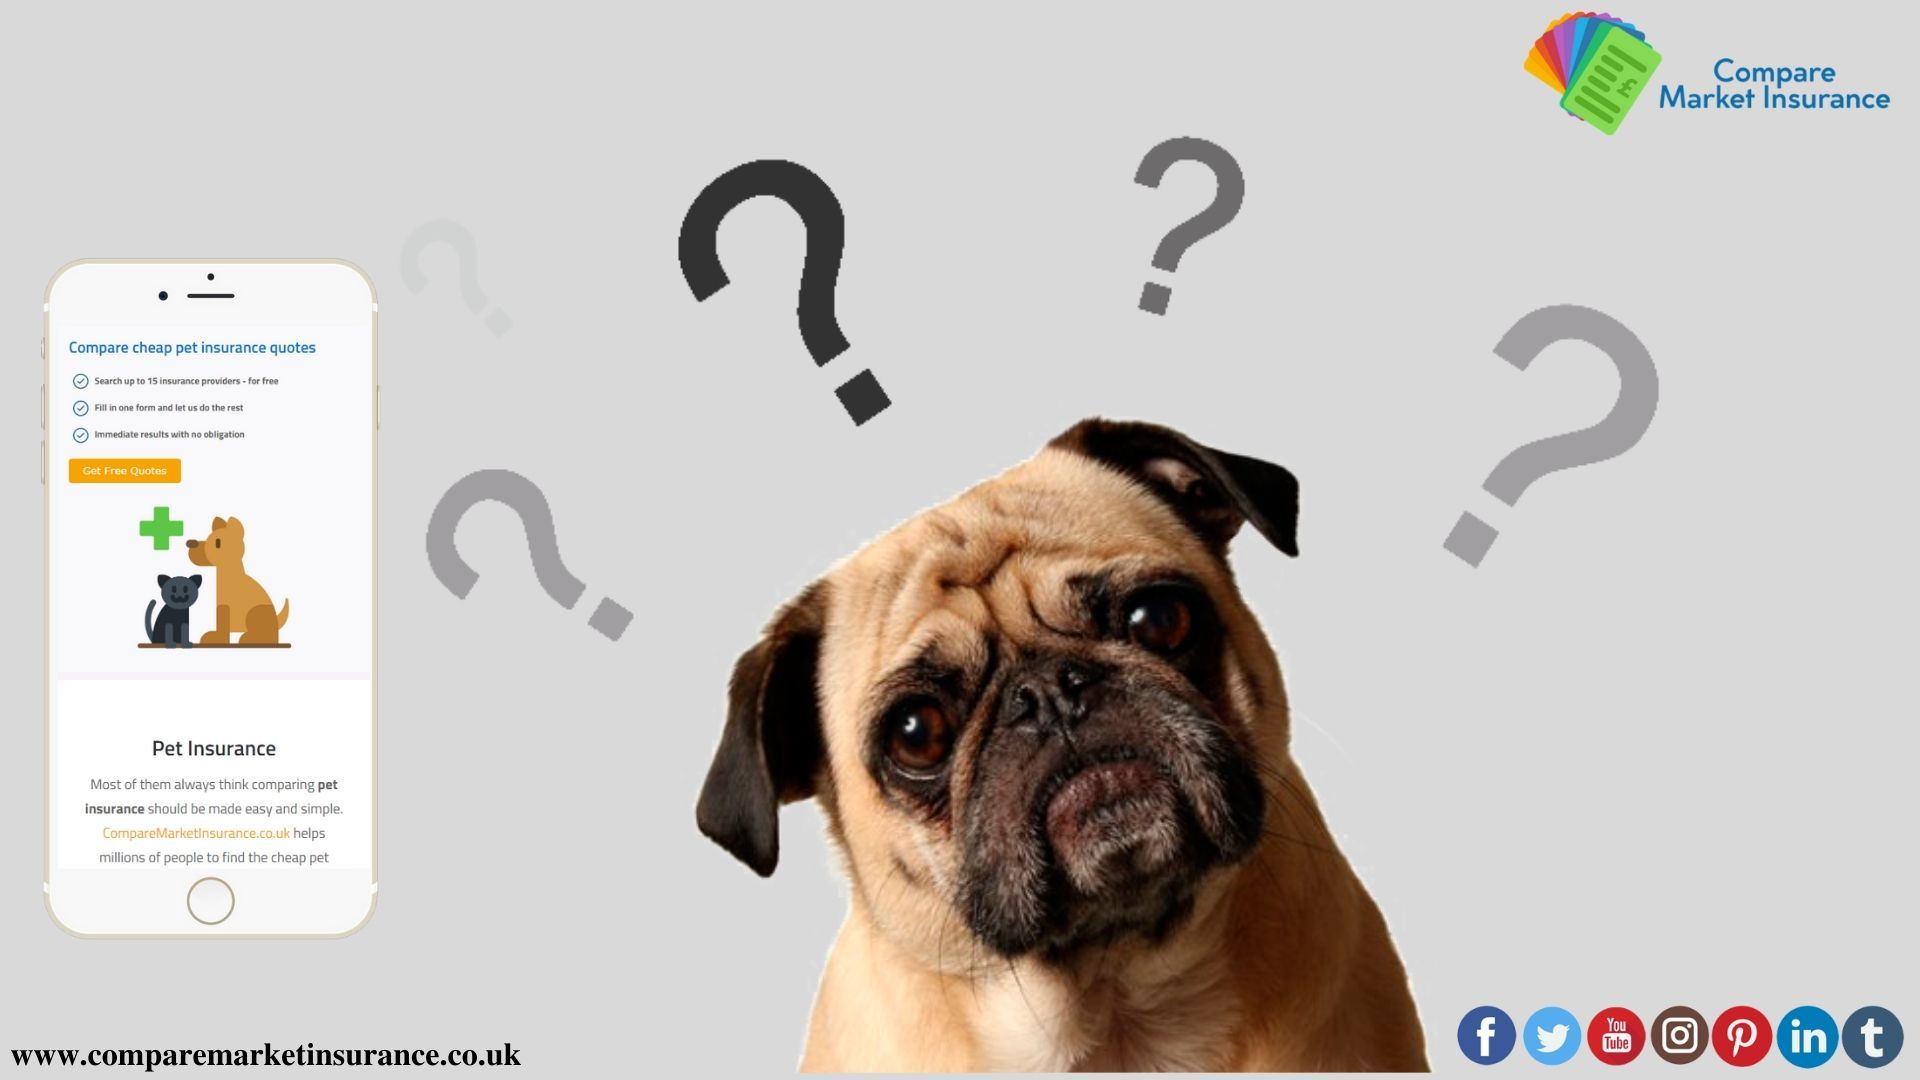 As the age of the pet increases the pet insurance premium